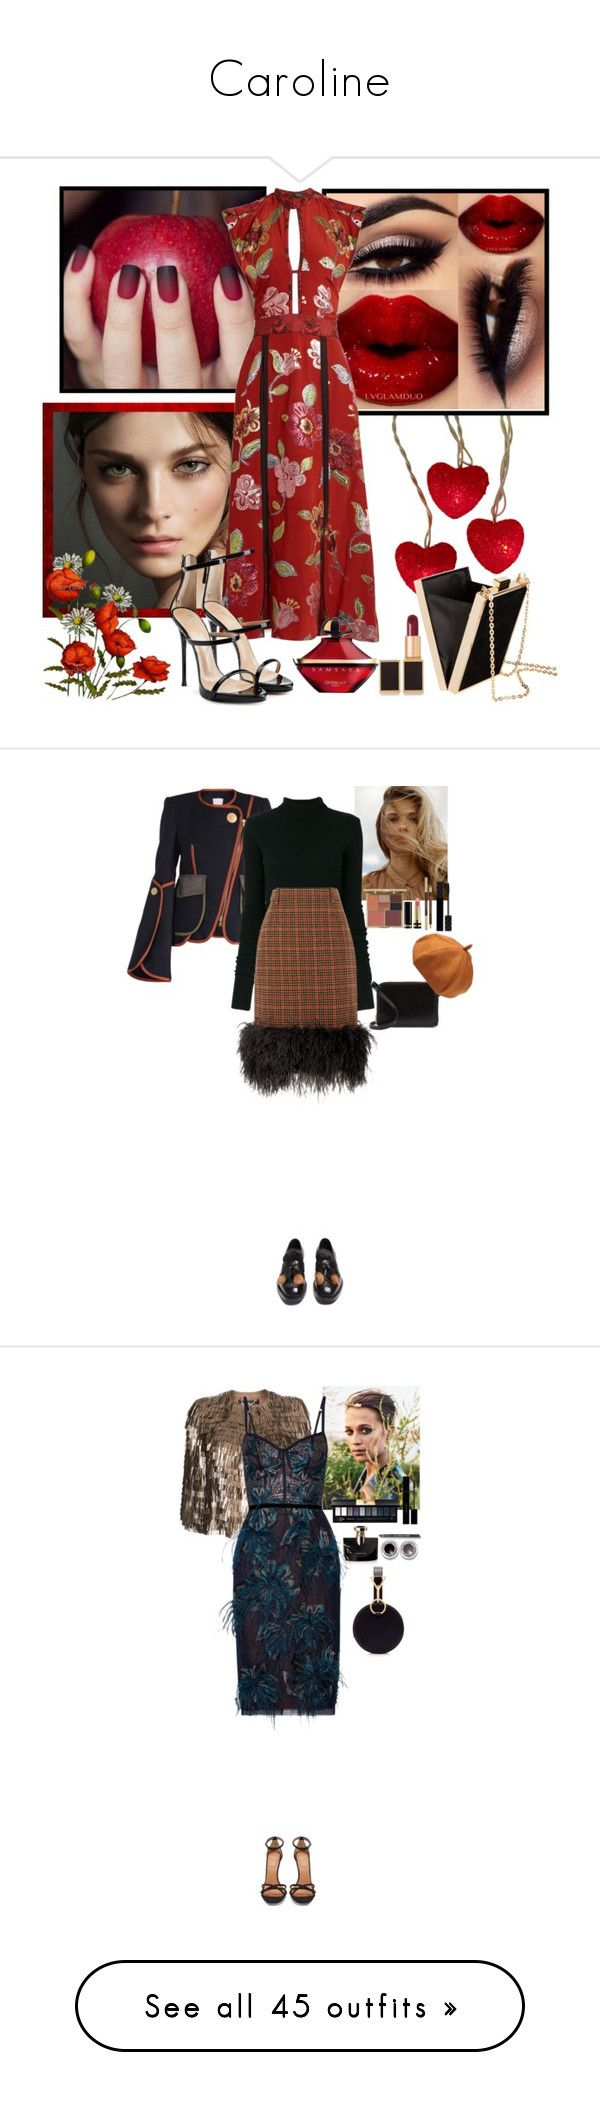 """Caroline"" by kkarolinas ❤ liked on Polyvore featuring Kurt Adler, Burberry, Tom Ford, Guerlain, Giuseppe Zanotti, H&M, Peter Pilotto, Faith Connexion, Prada and Stila"